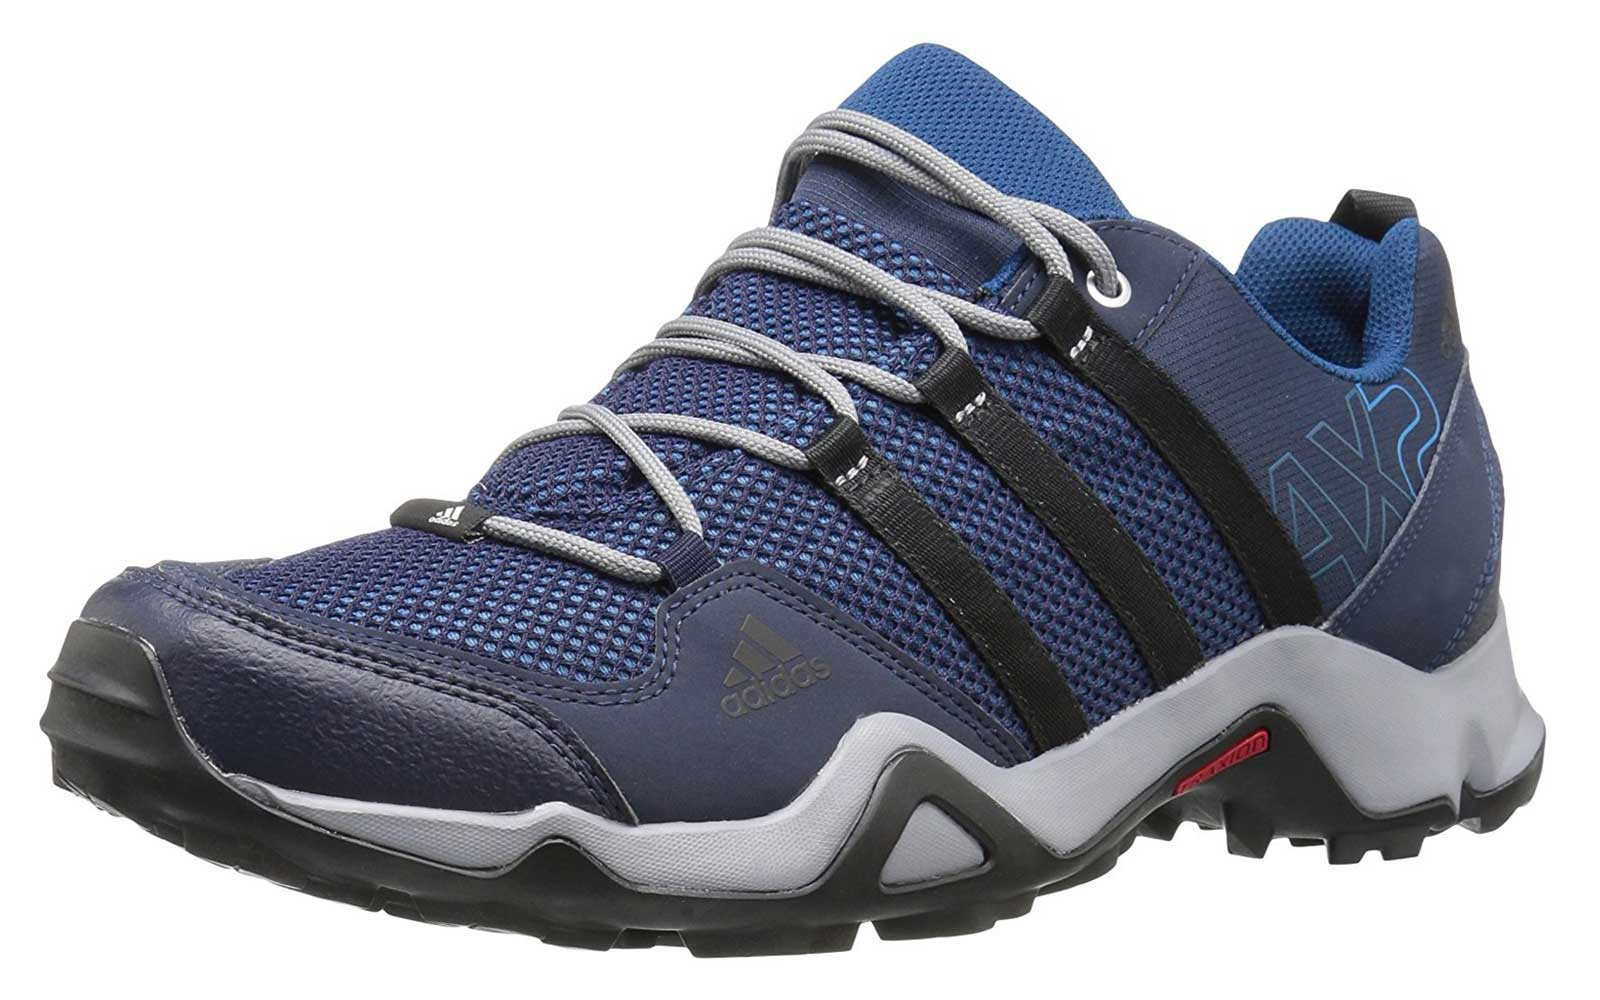 Adidas Hiking Boot for Men